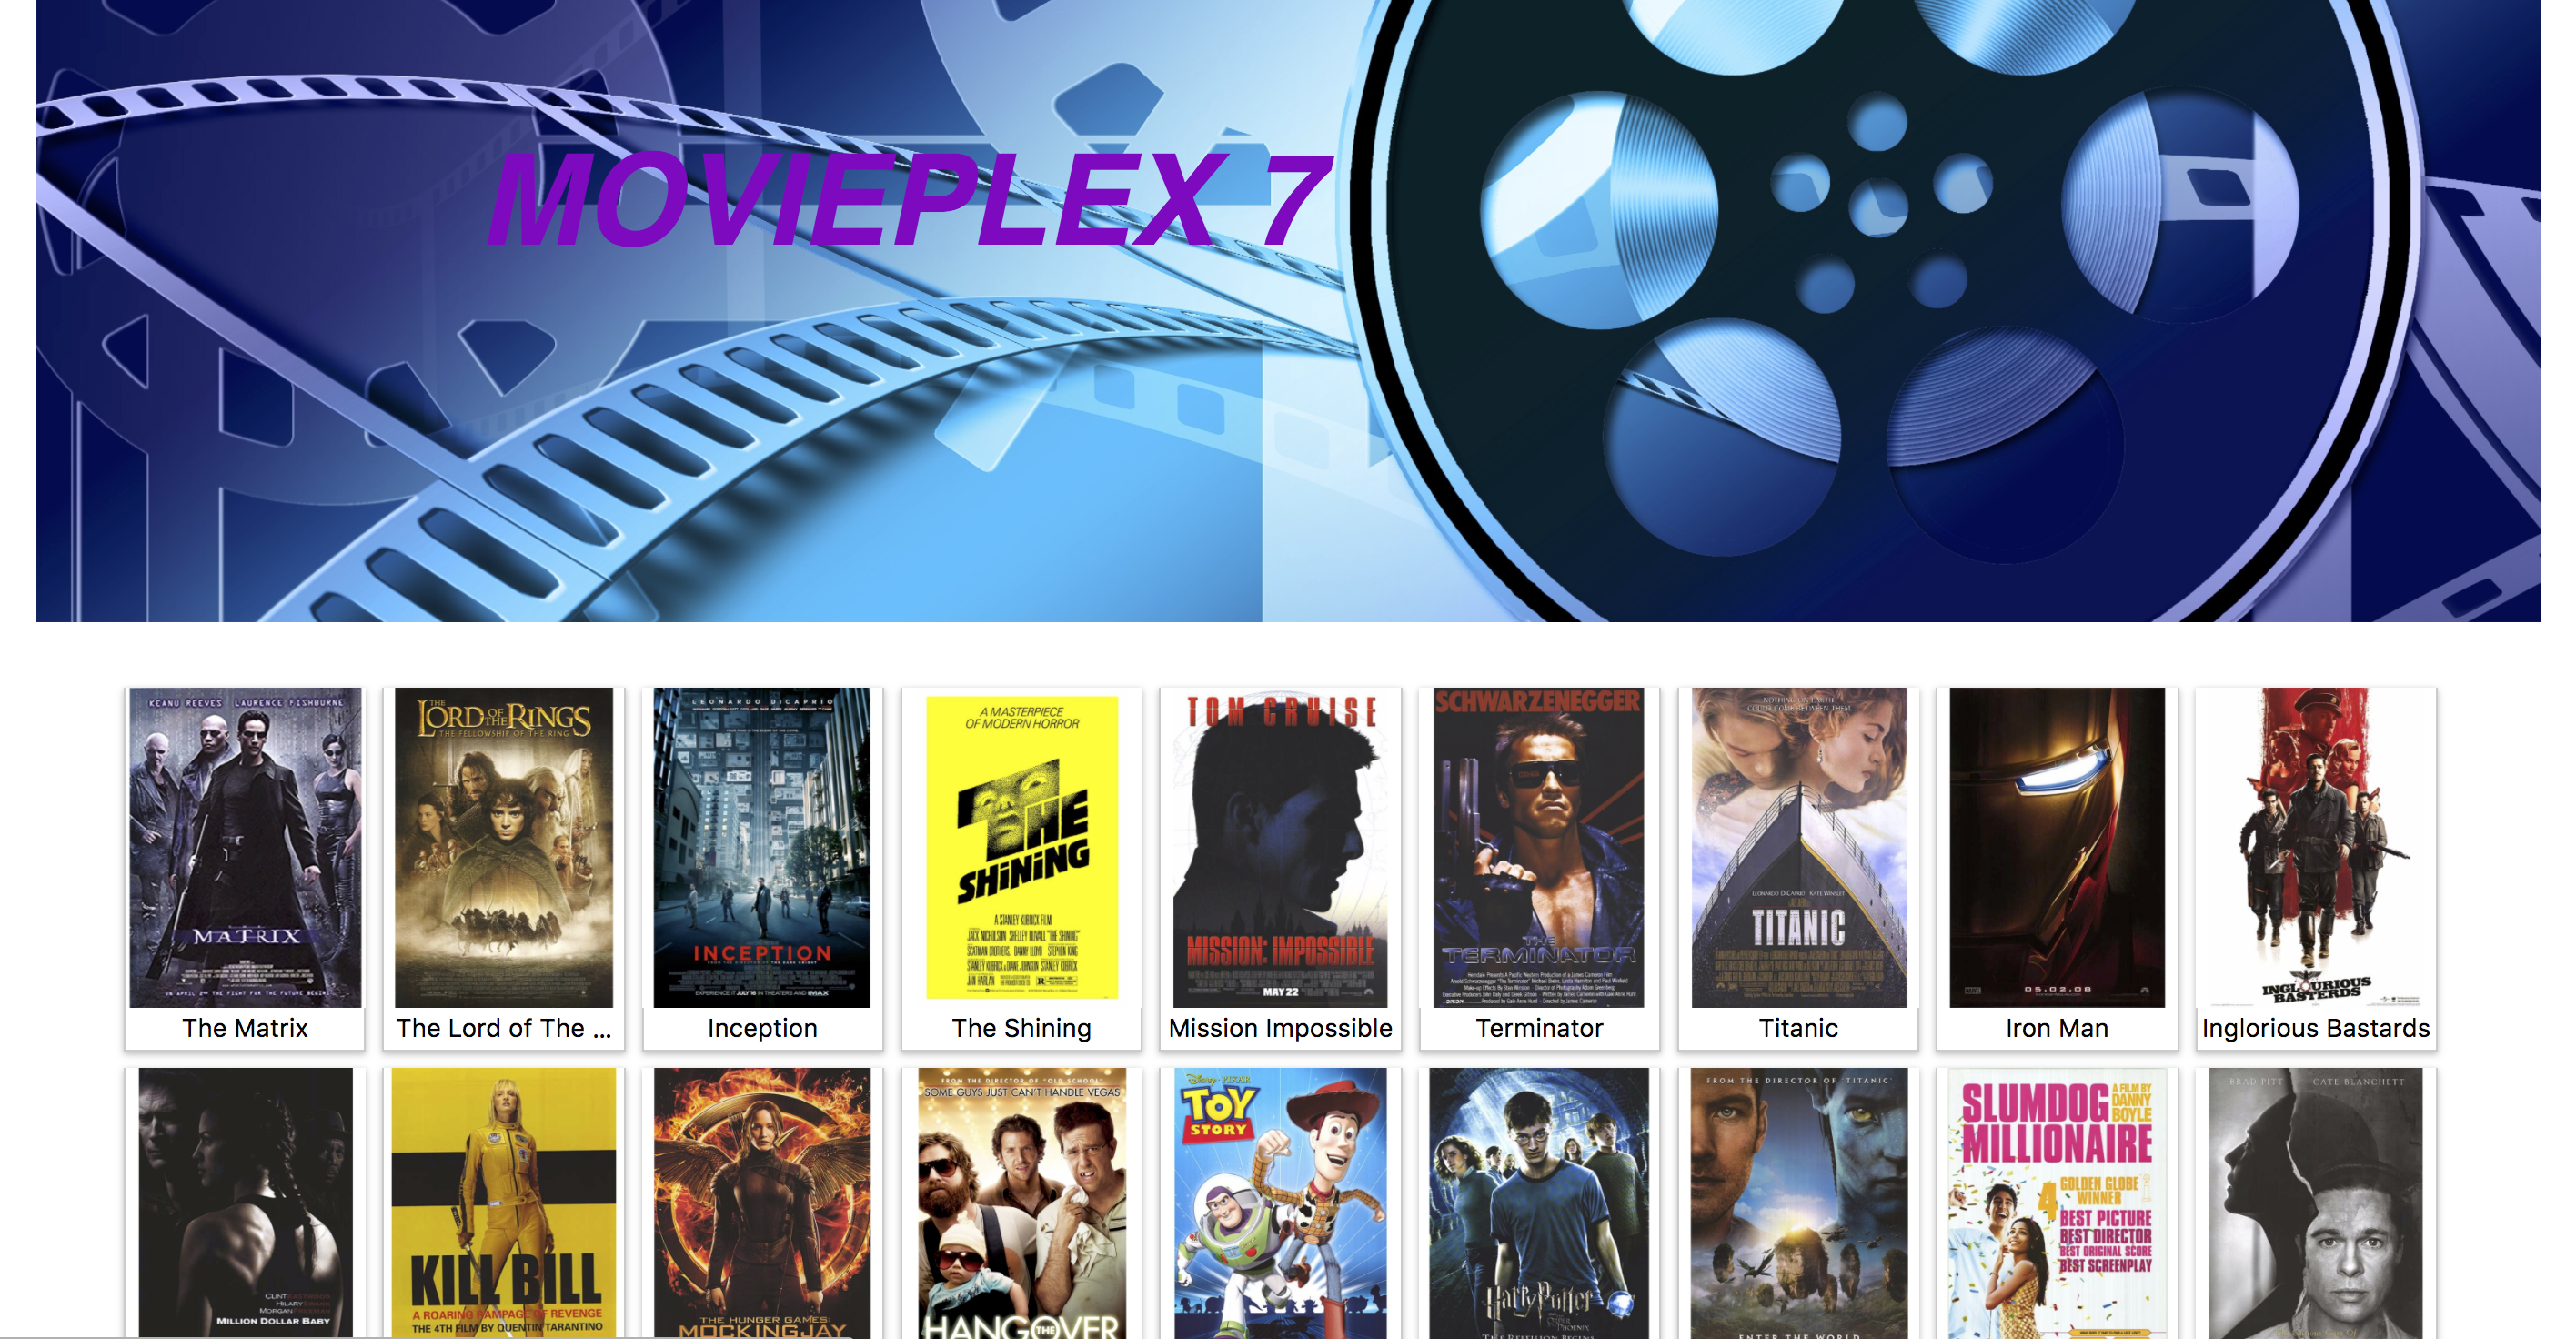 Movieplex7 React Front-end